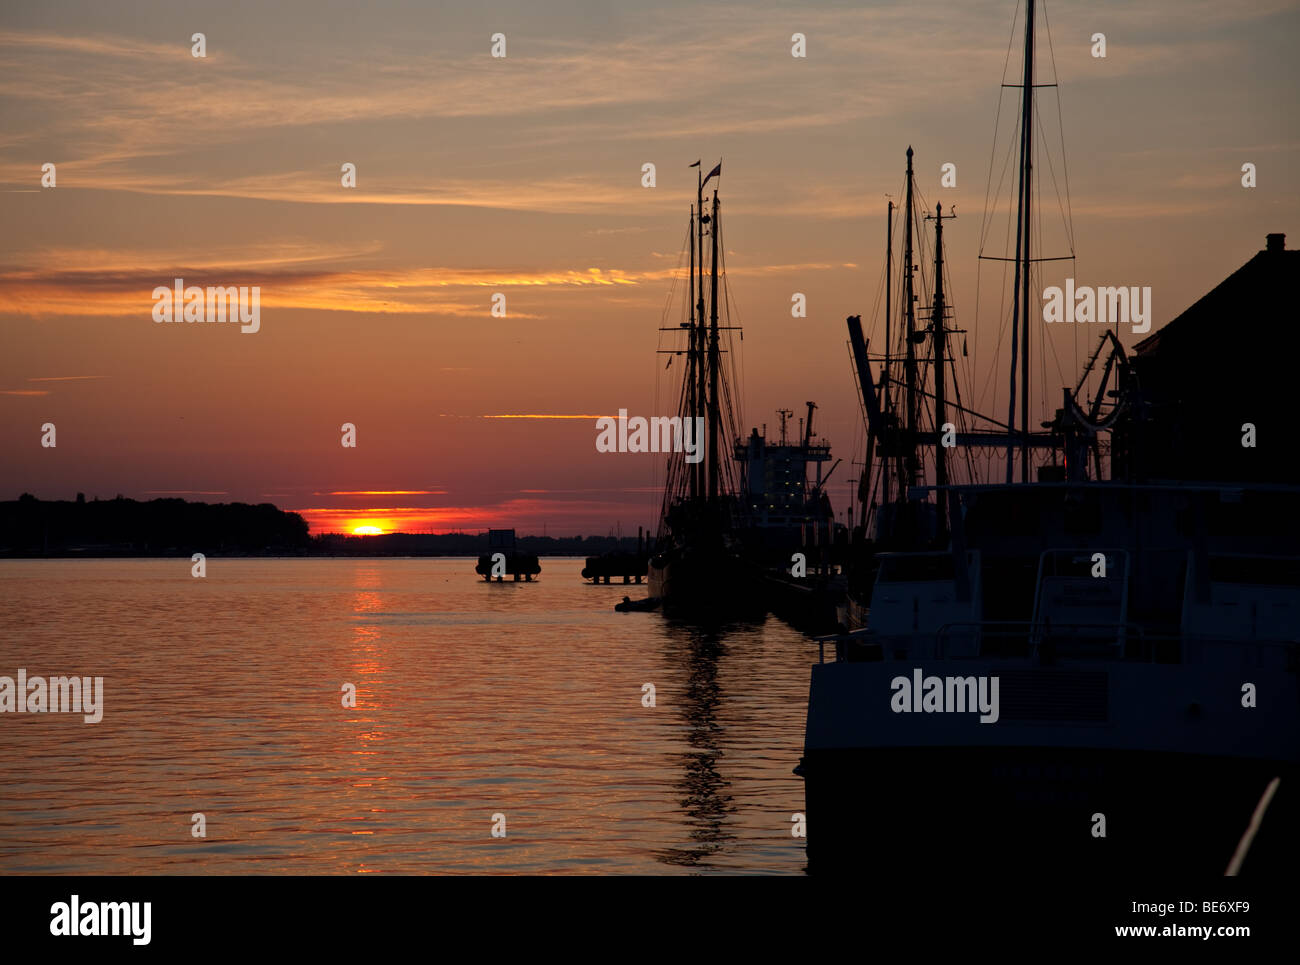 Silhouettes of boats and masts at Baltic sea in Wismar, Germany - Stock Image